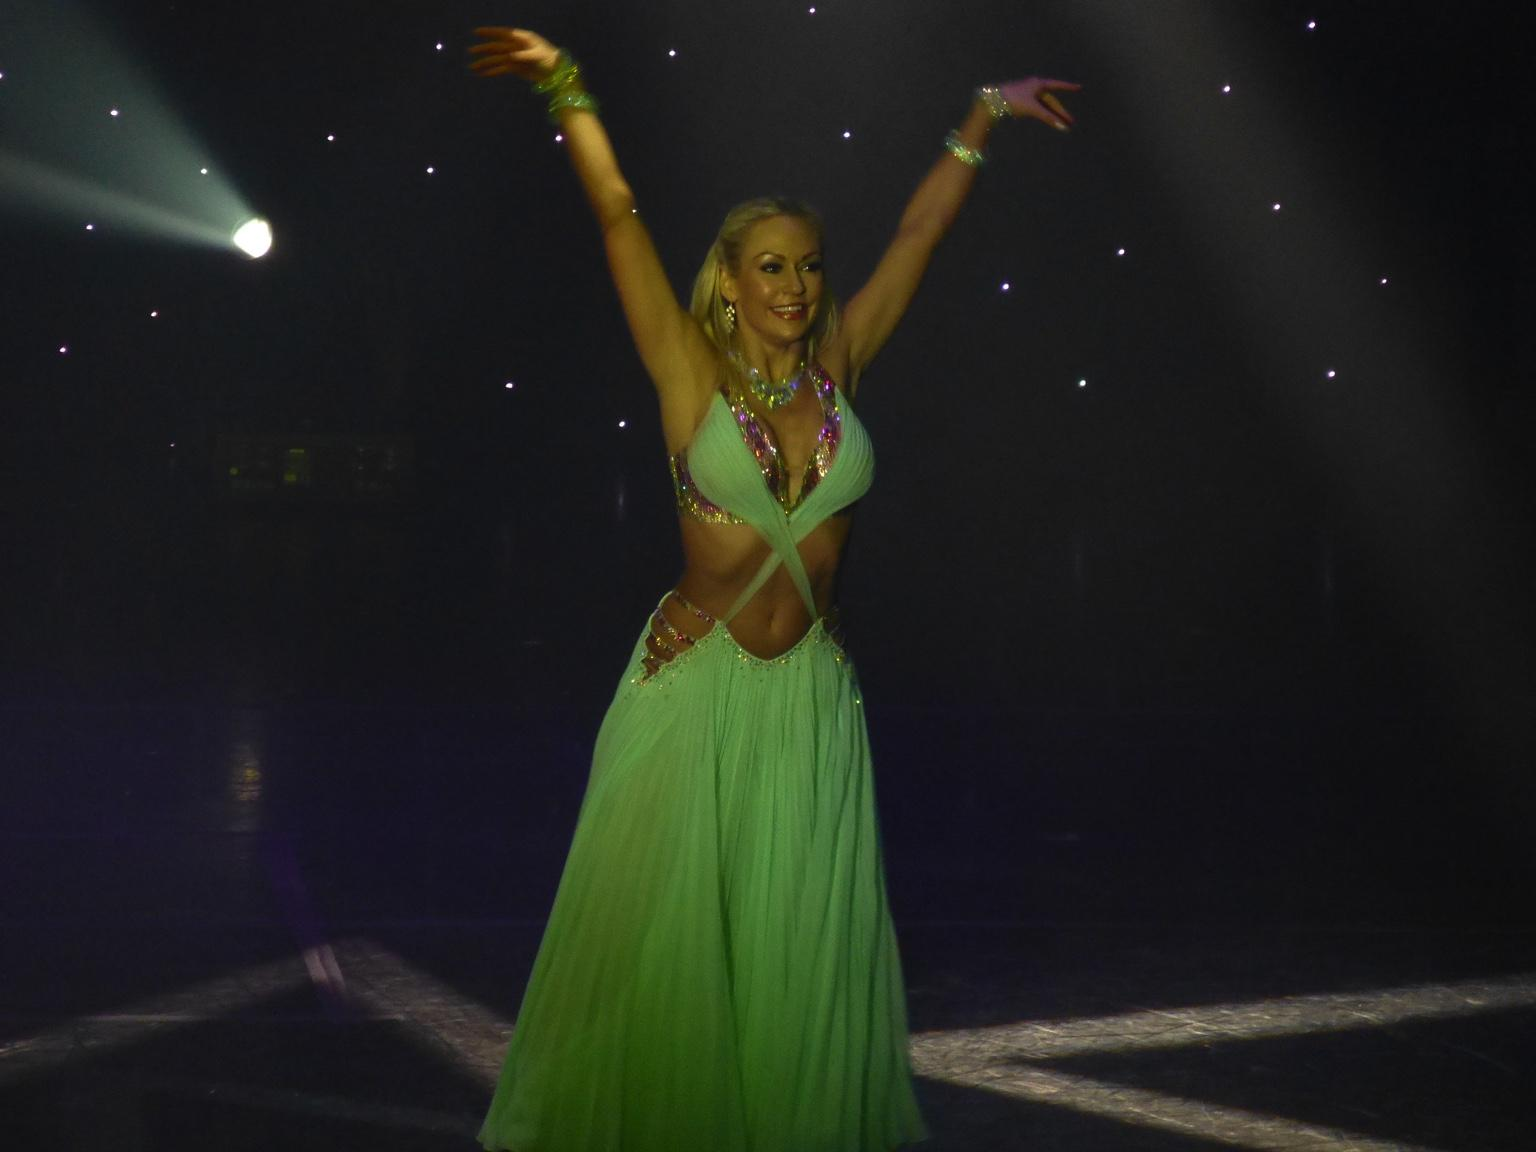 RT @Richardbbc: @KRihanoff wow…just wow… http://t.co/XiLFugzkkQ